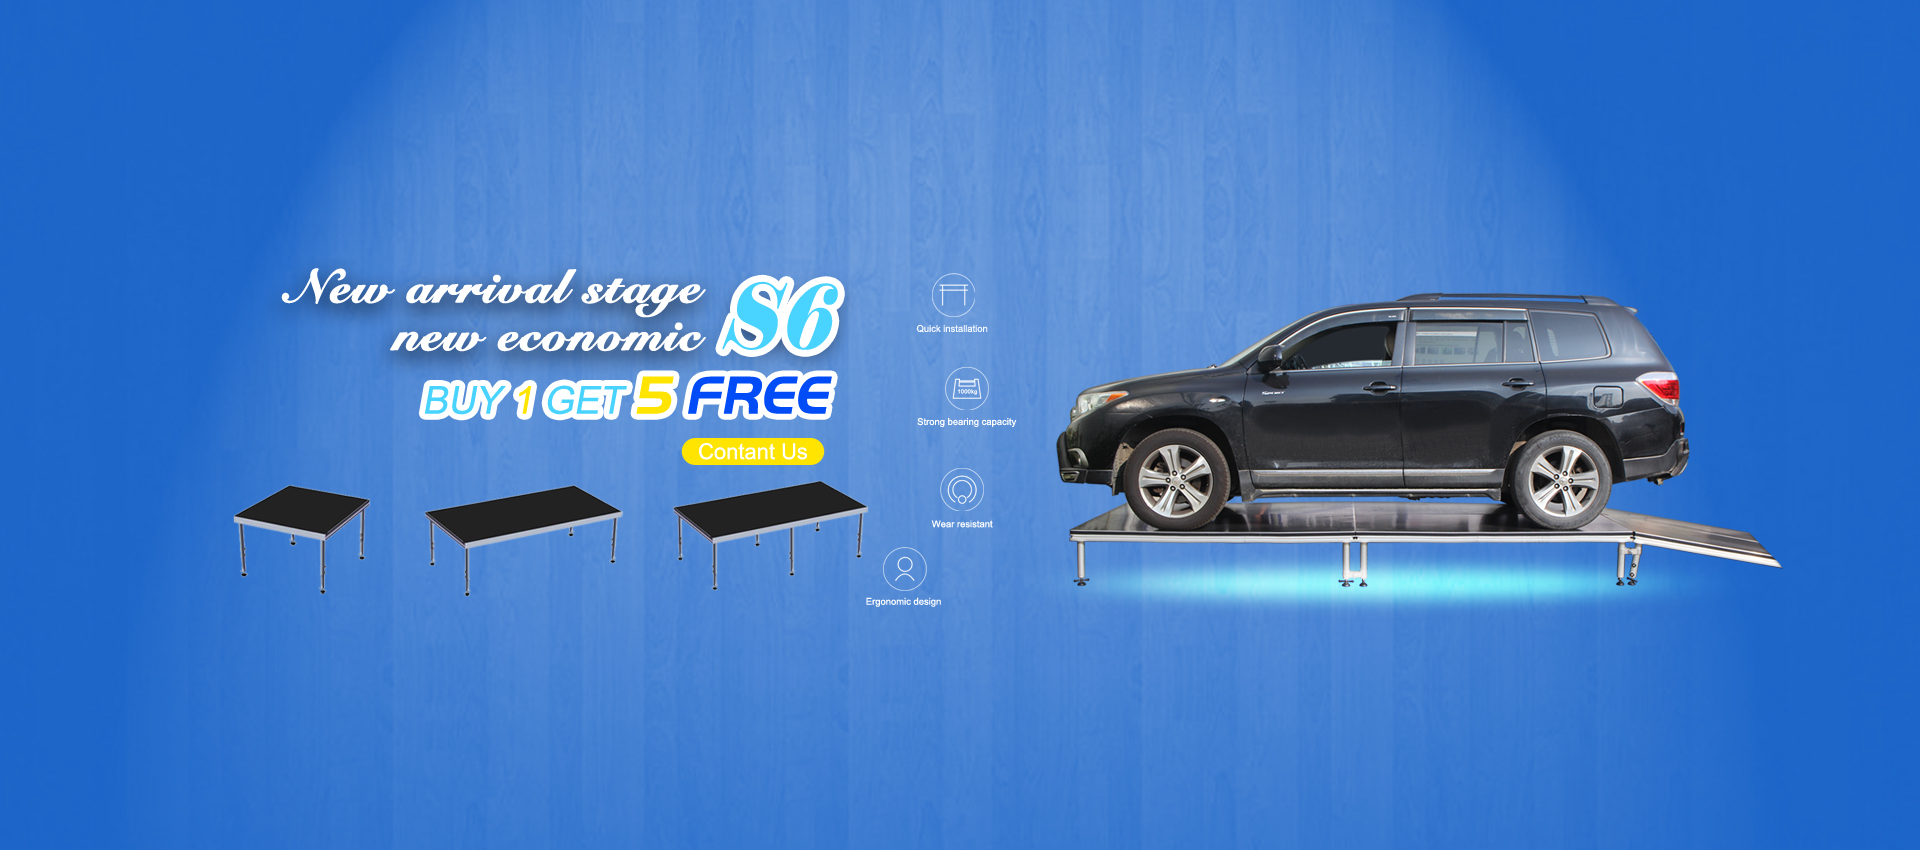 S6 New Upgrade Portable Mobile Stage Promotion